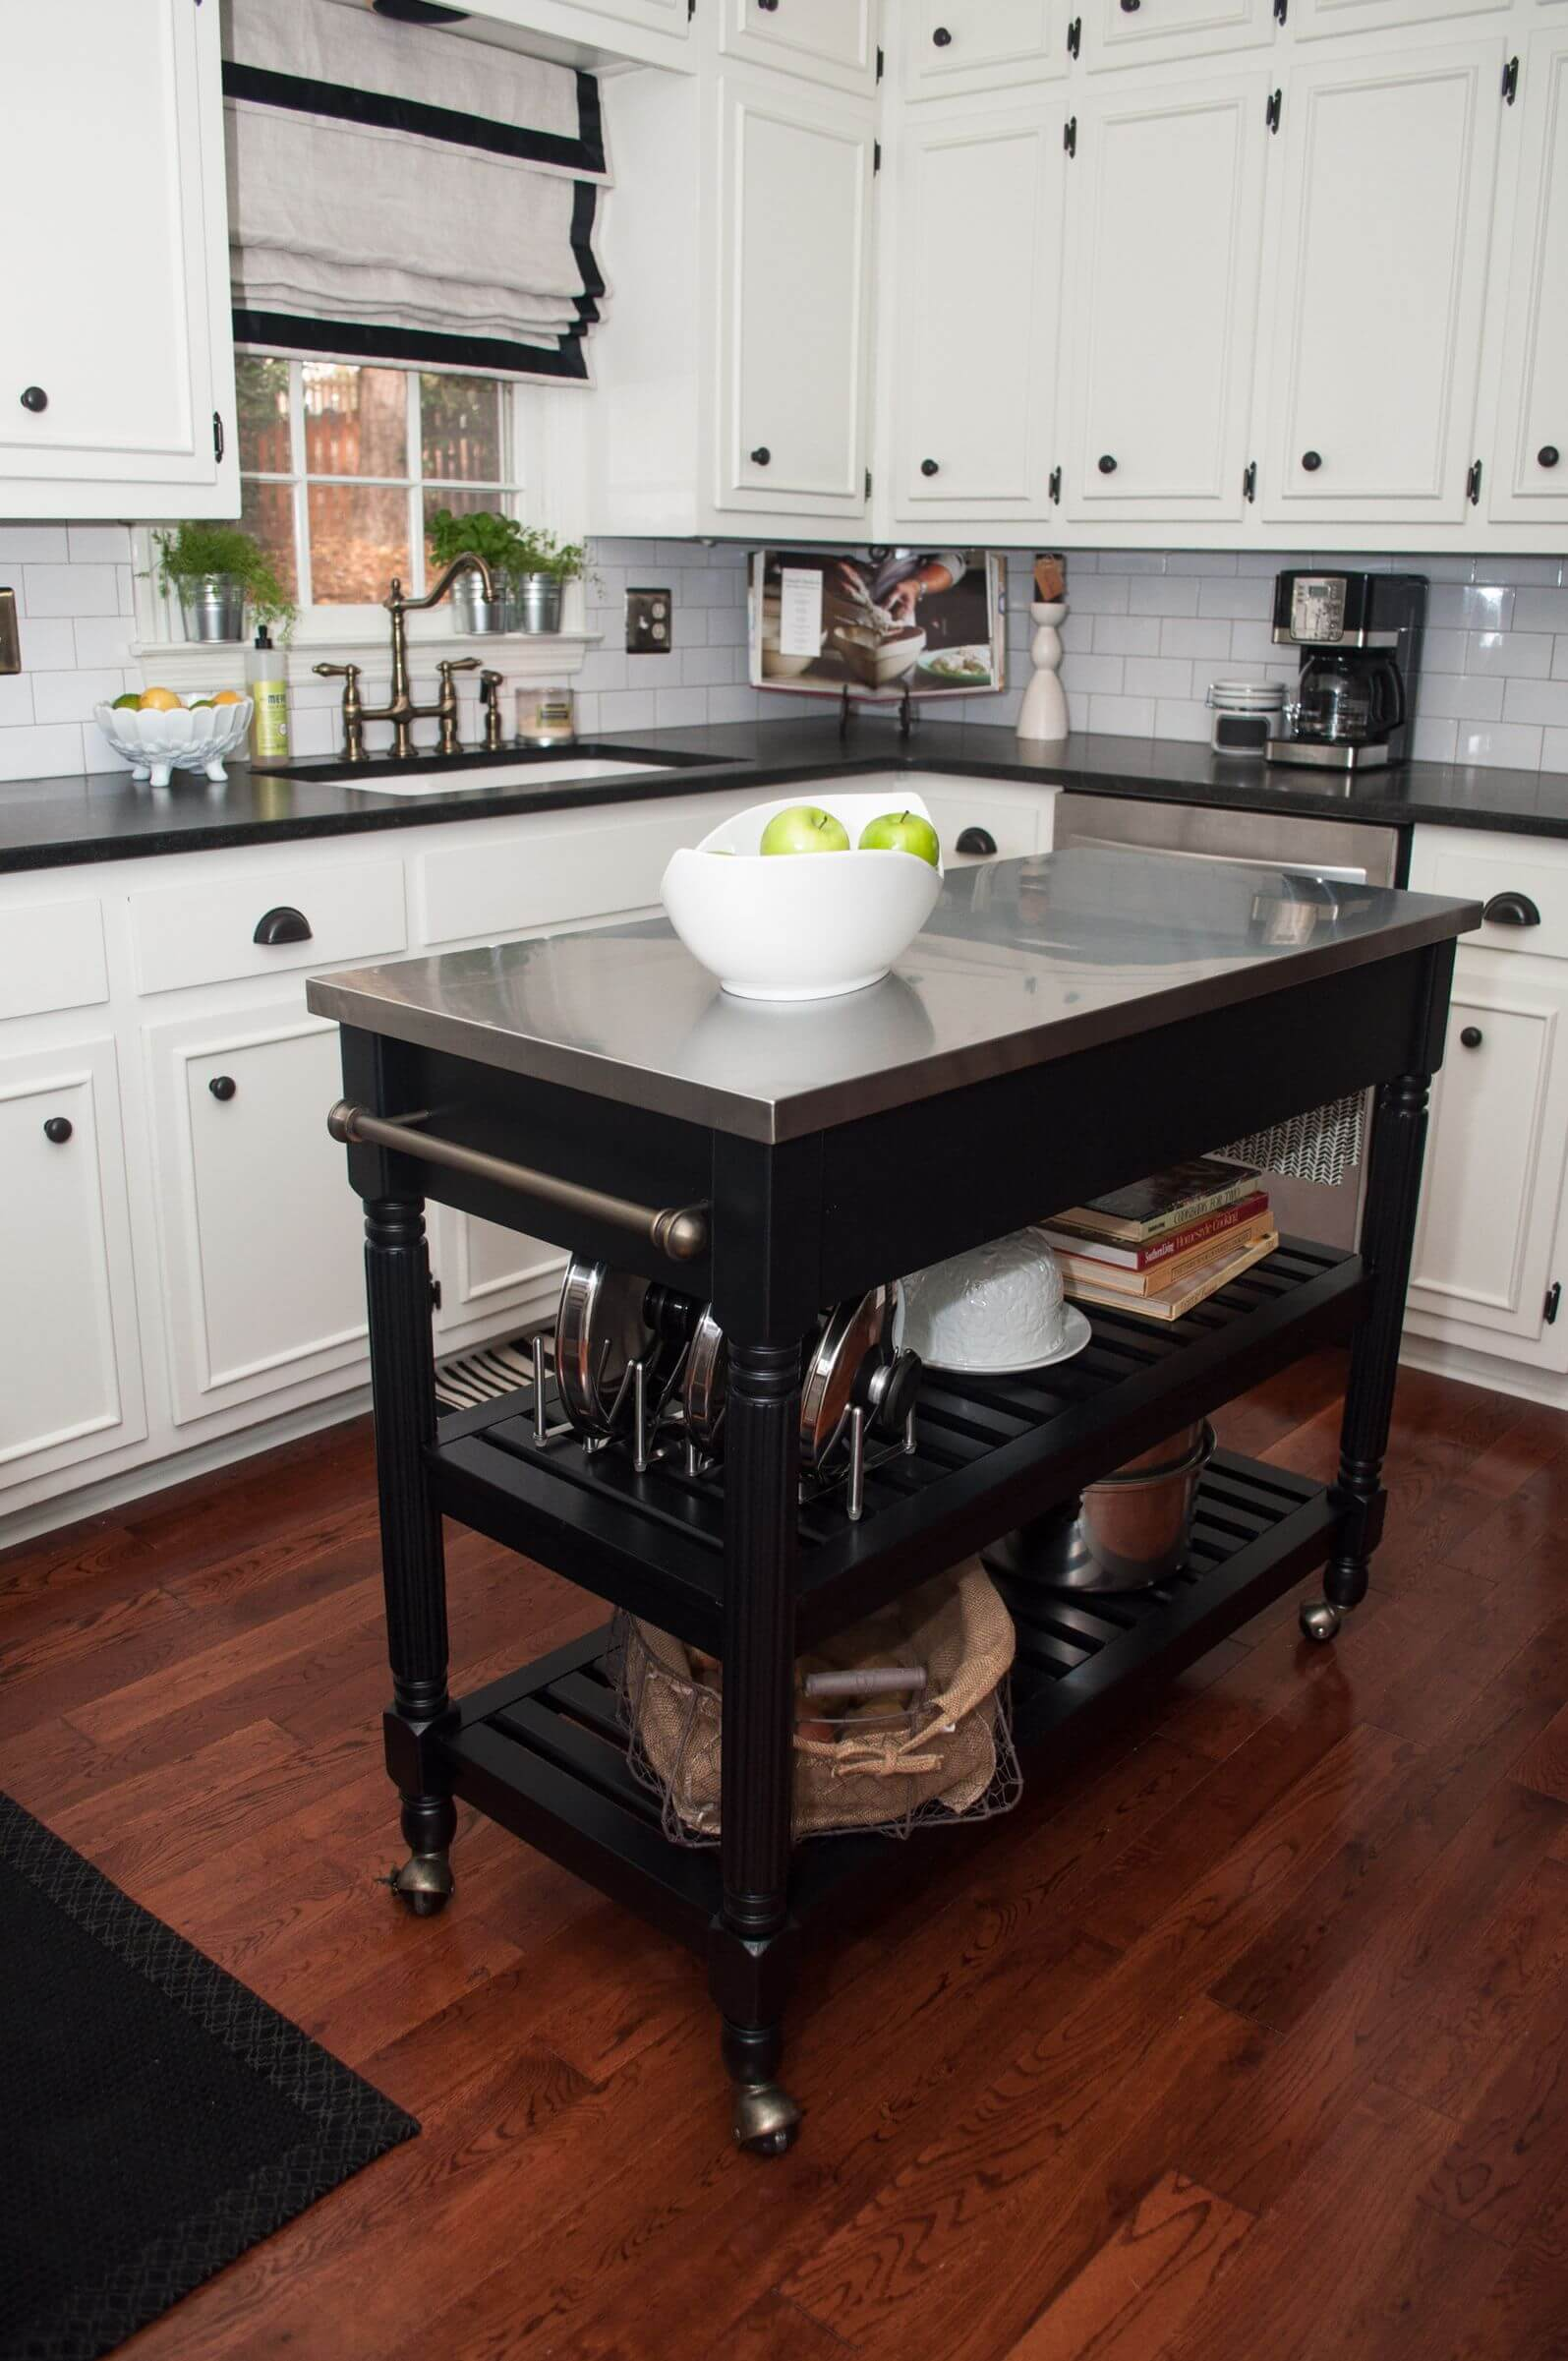 kitchen workbench refinishing ideas 60 types of small islands carts on wheels 2019 white with dark portable island